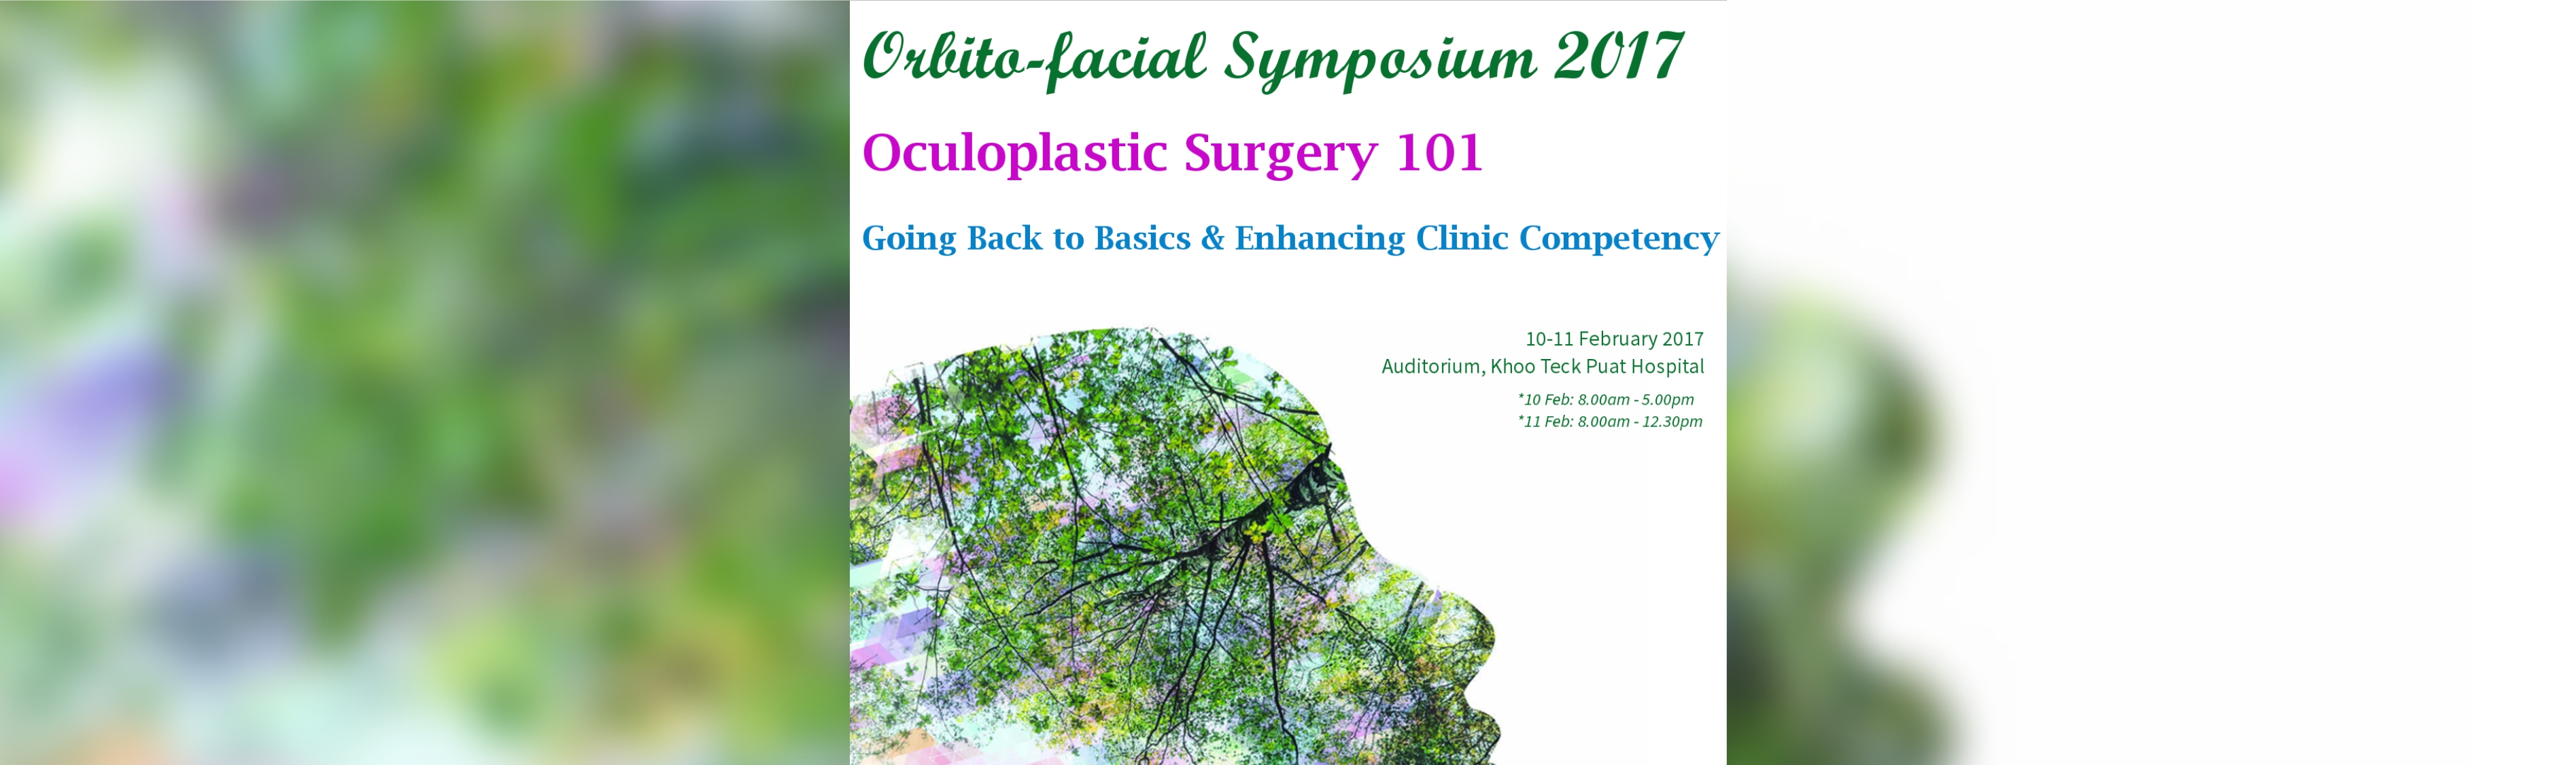 Orbito-facial Symposium 2017